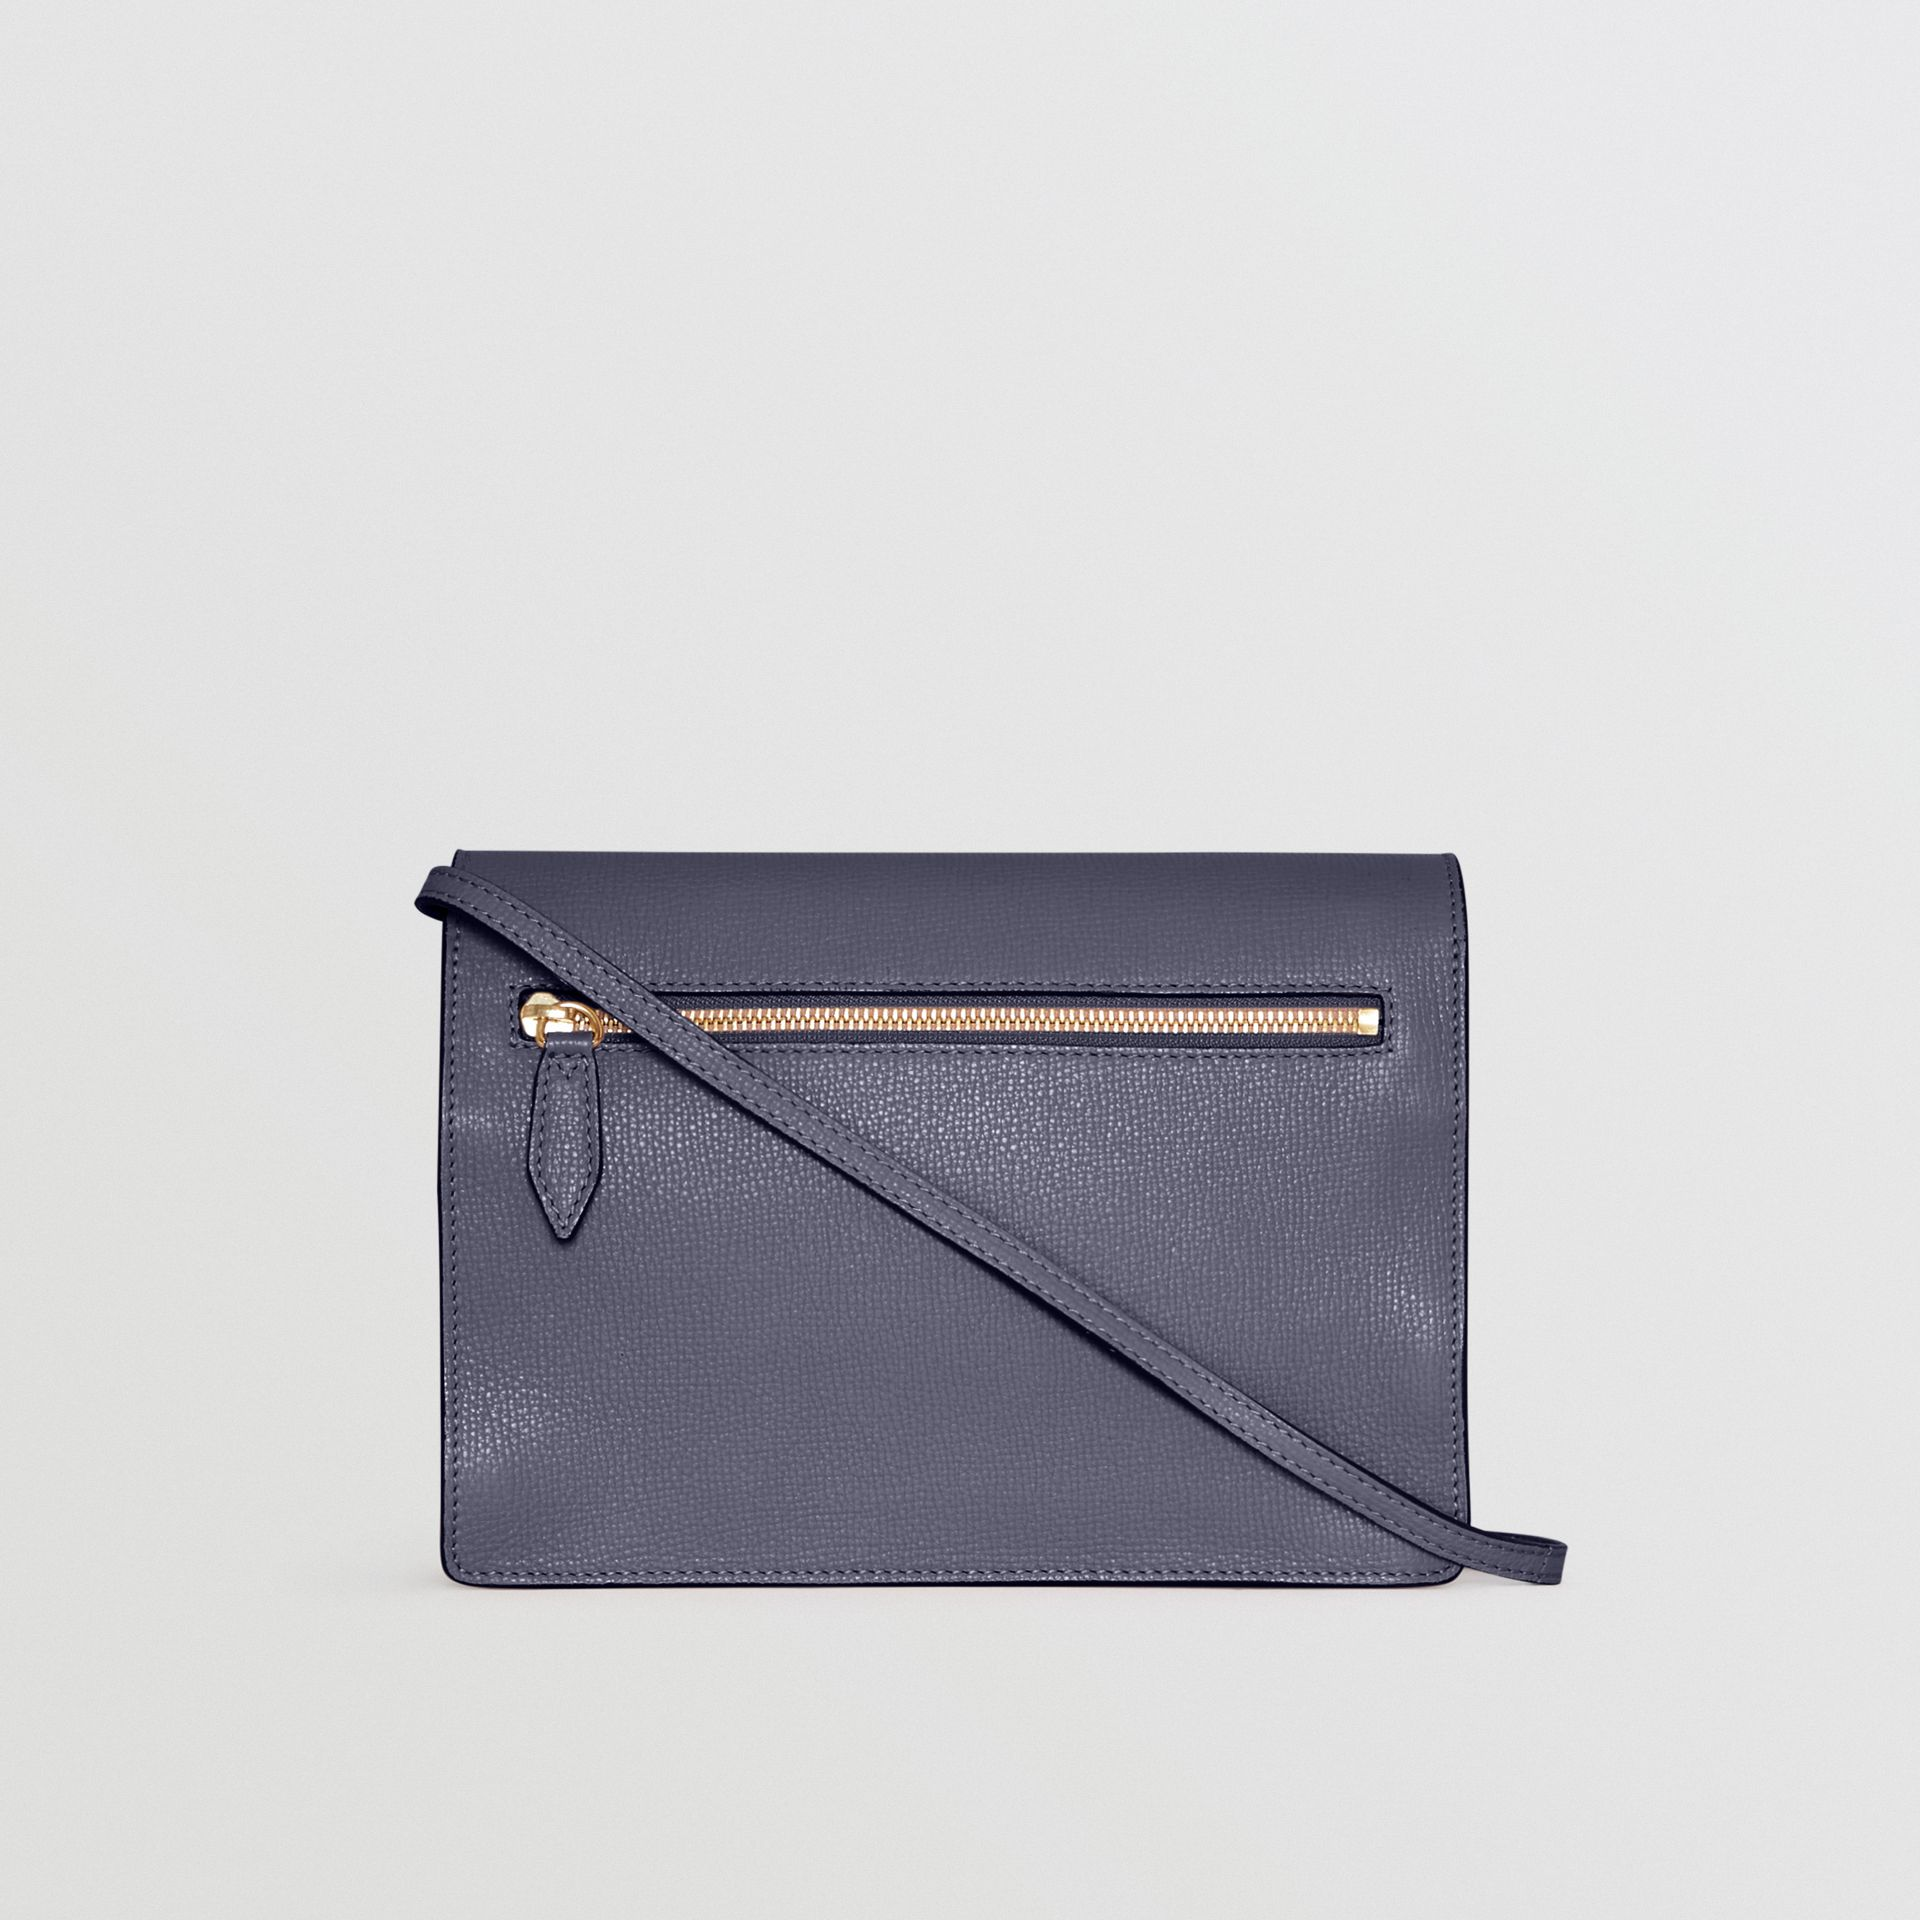 Small Leather and House Check Crossbody Bag in Ink Blue - Women | Burberry United Kingdom - gallery image 7